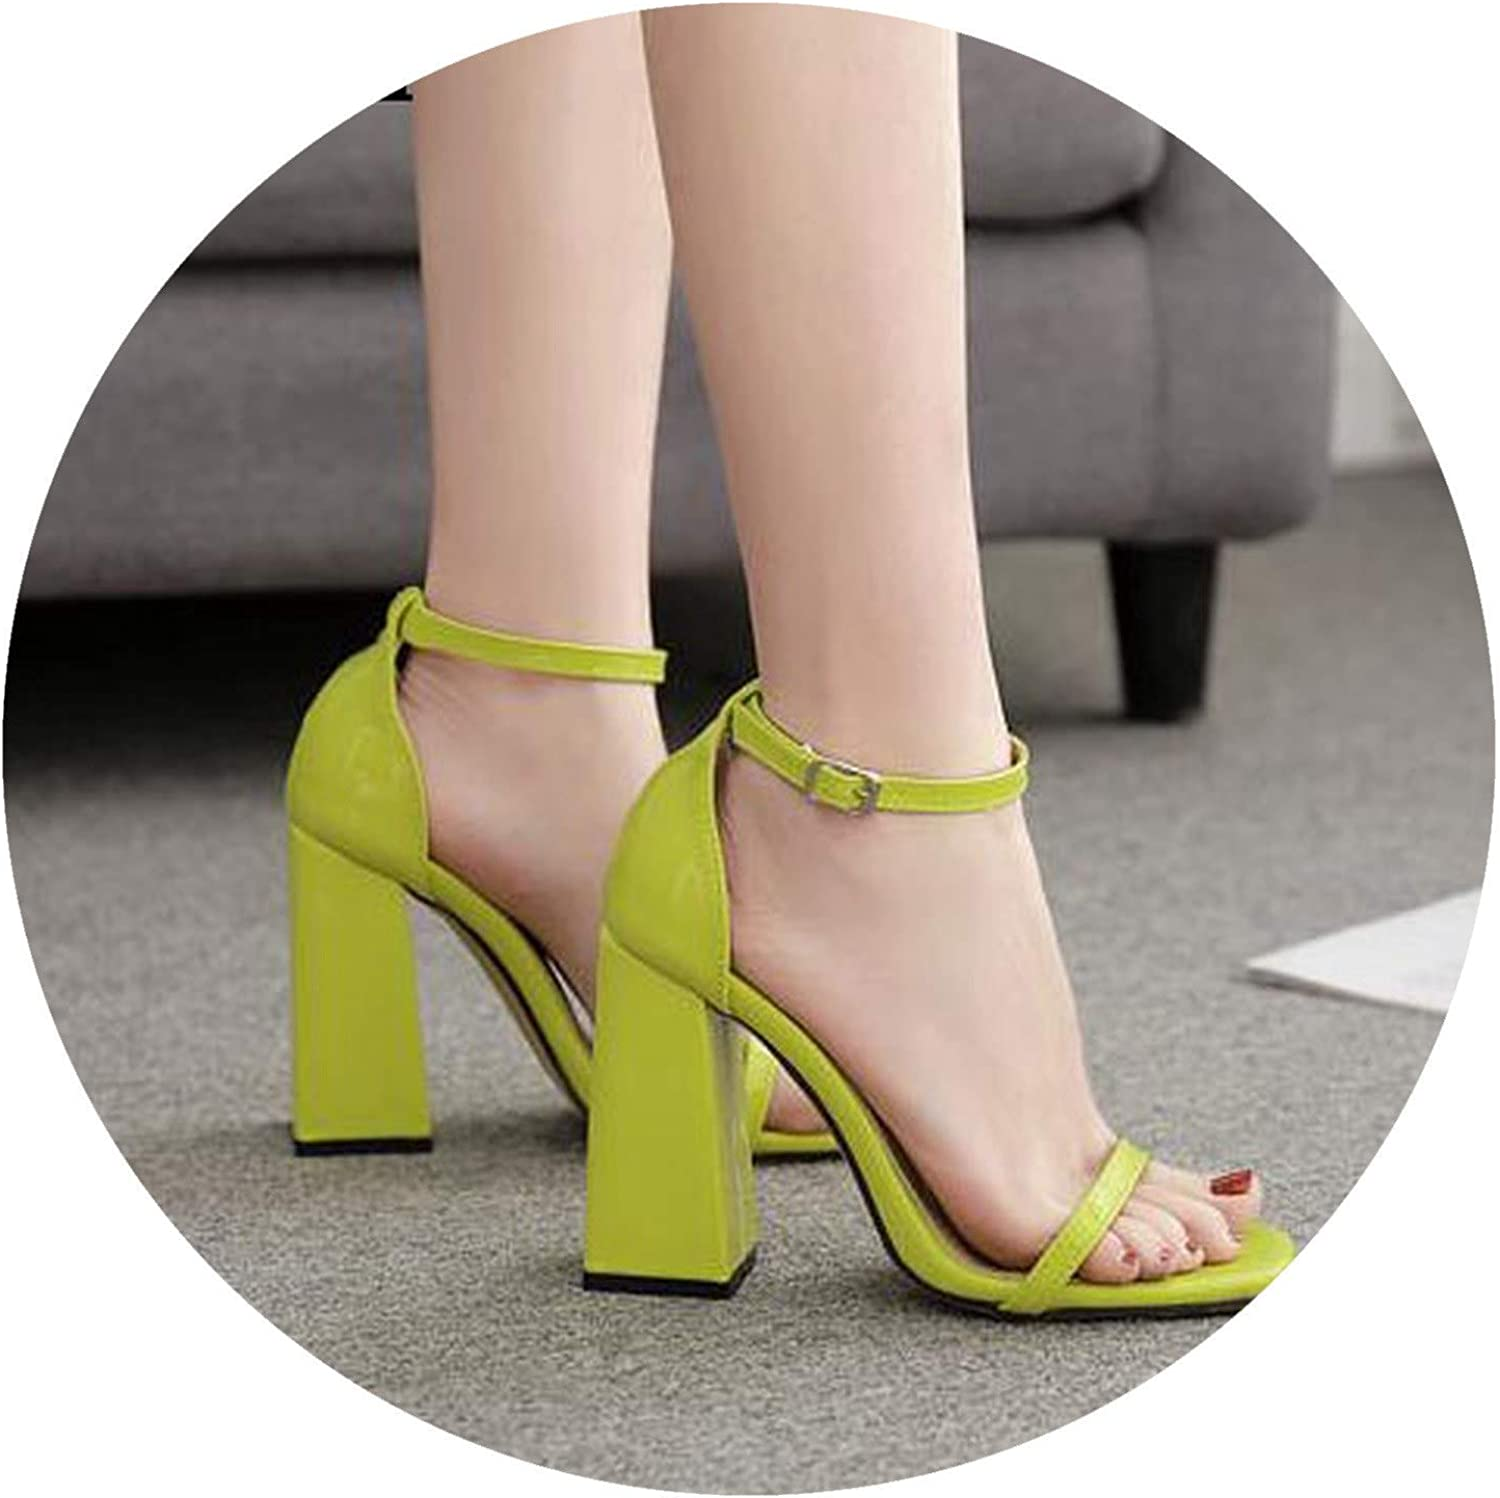 Fluorescent Green Buckle Strap Women's Sandals shoes Sexy Open-Toed Party Square High Heels Sandals